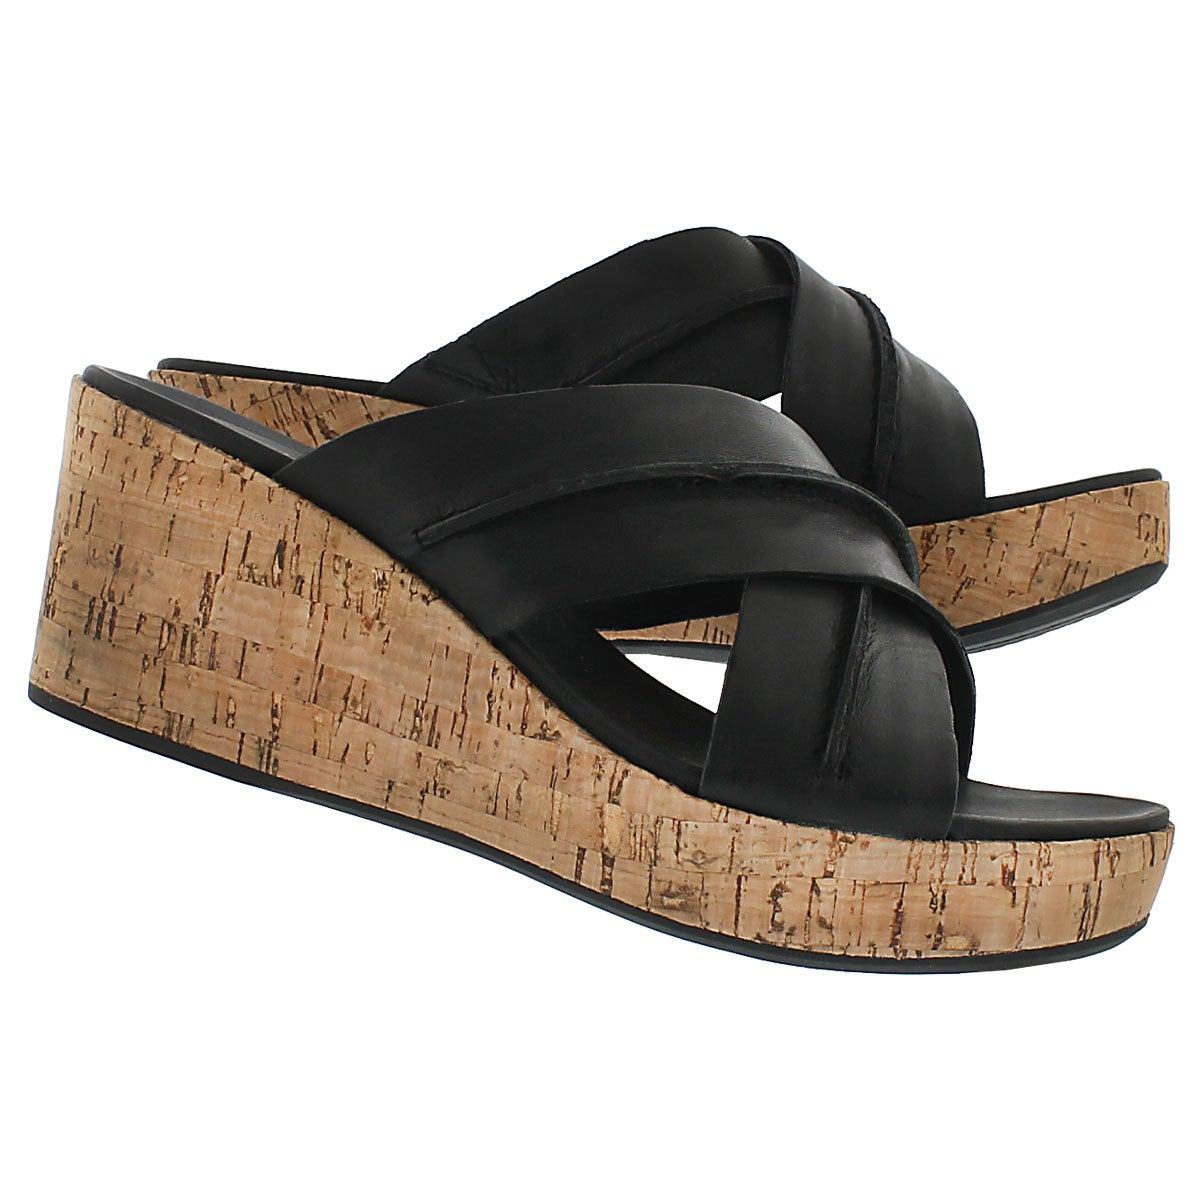 Lds Belinda Durante black wedge sandal